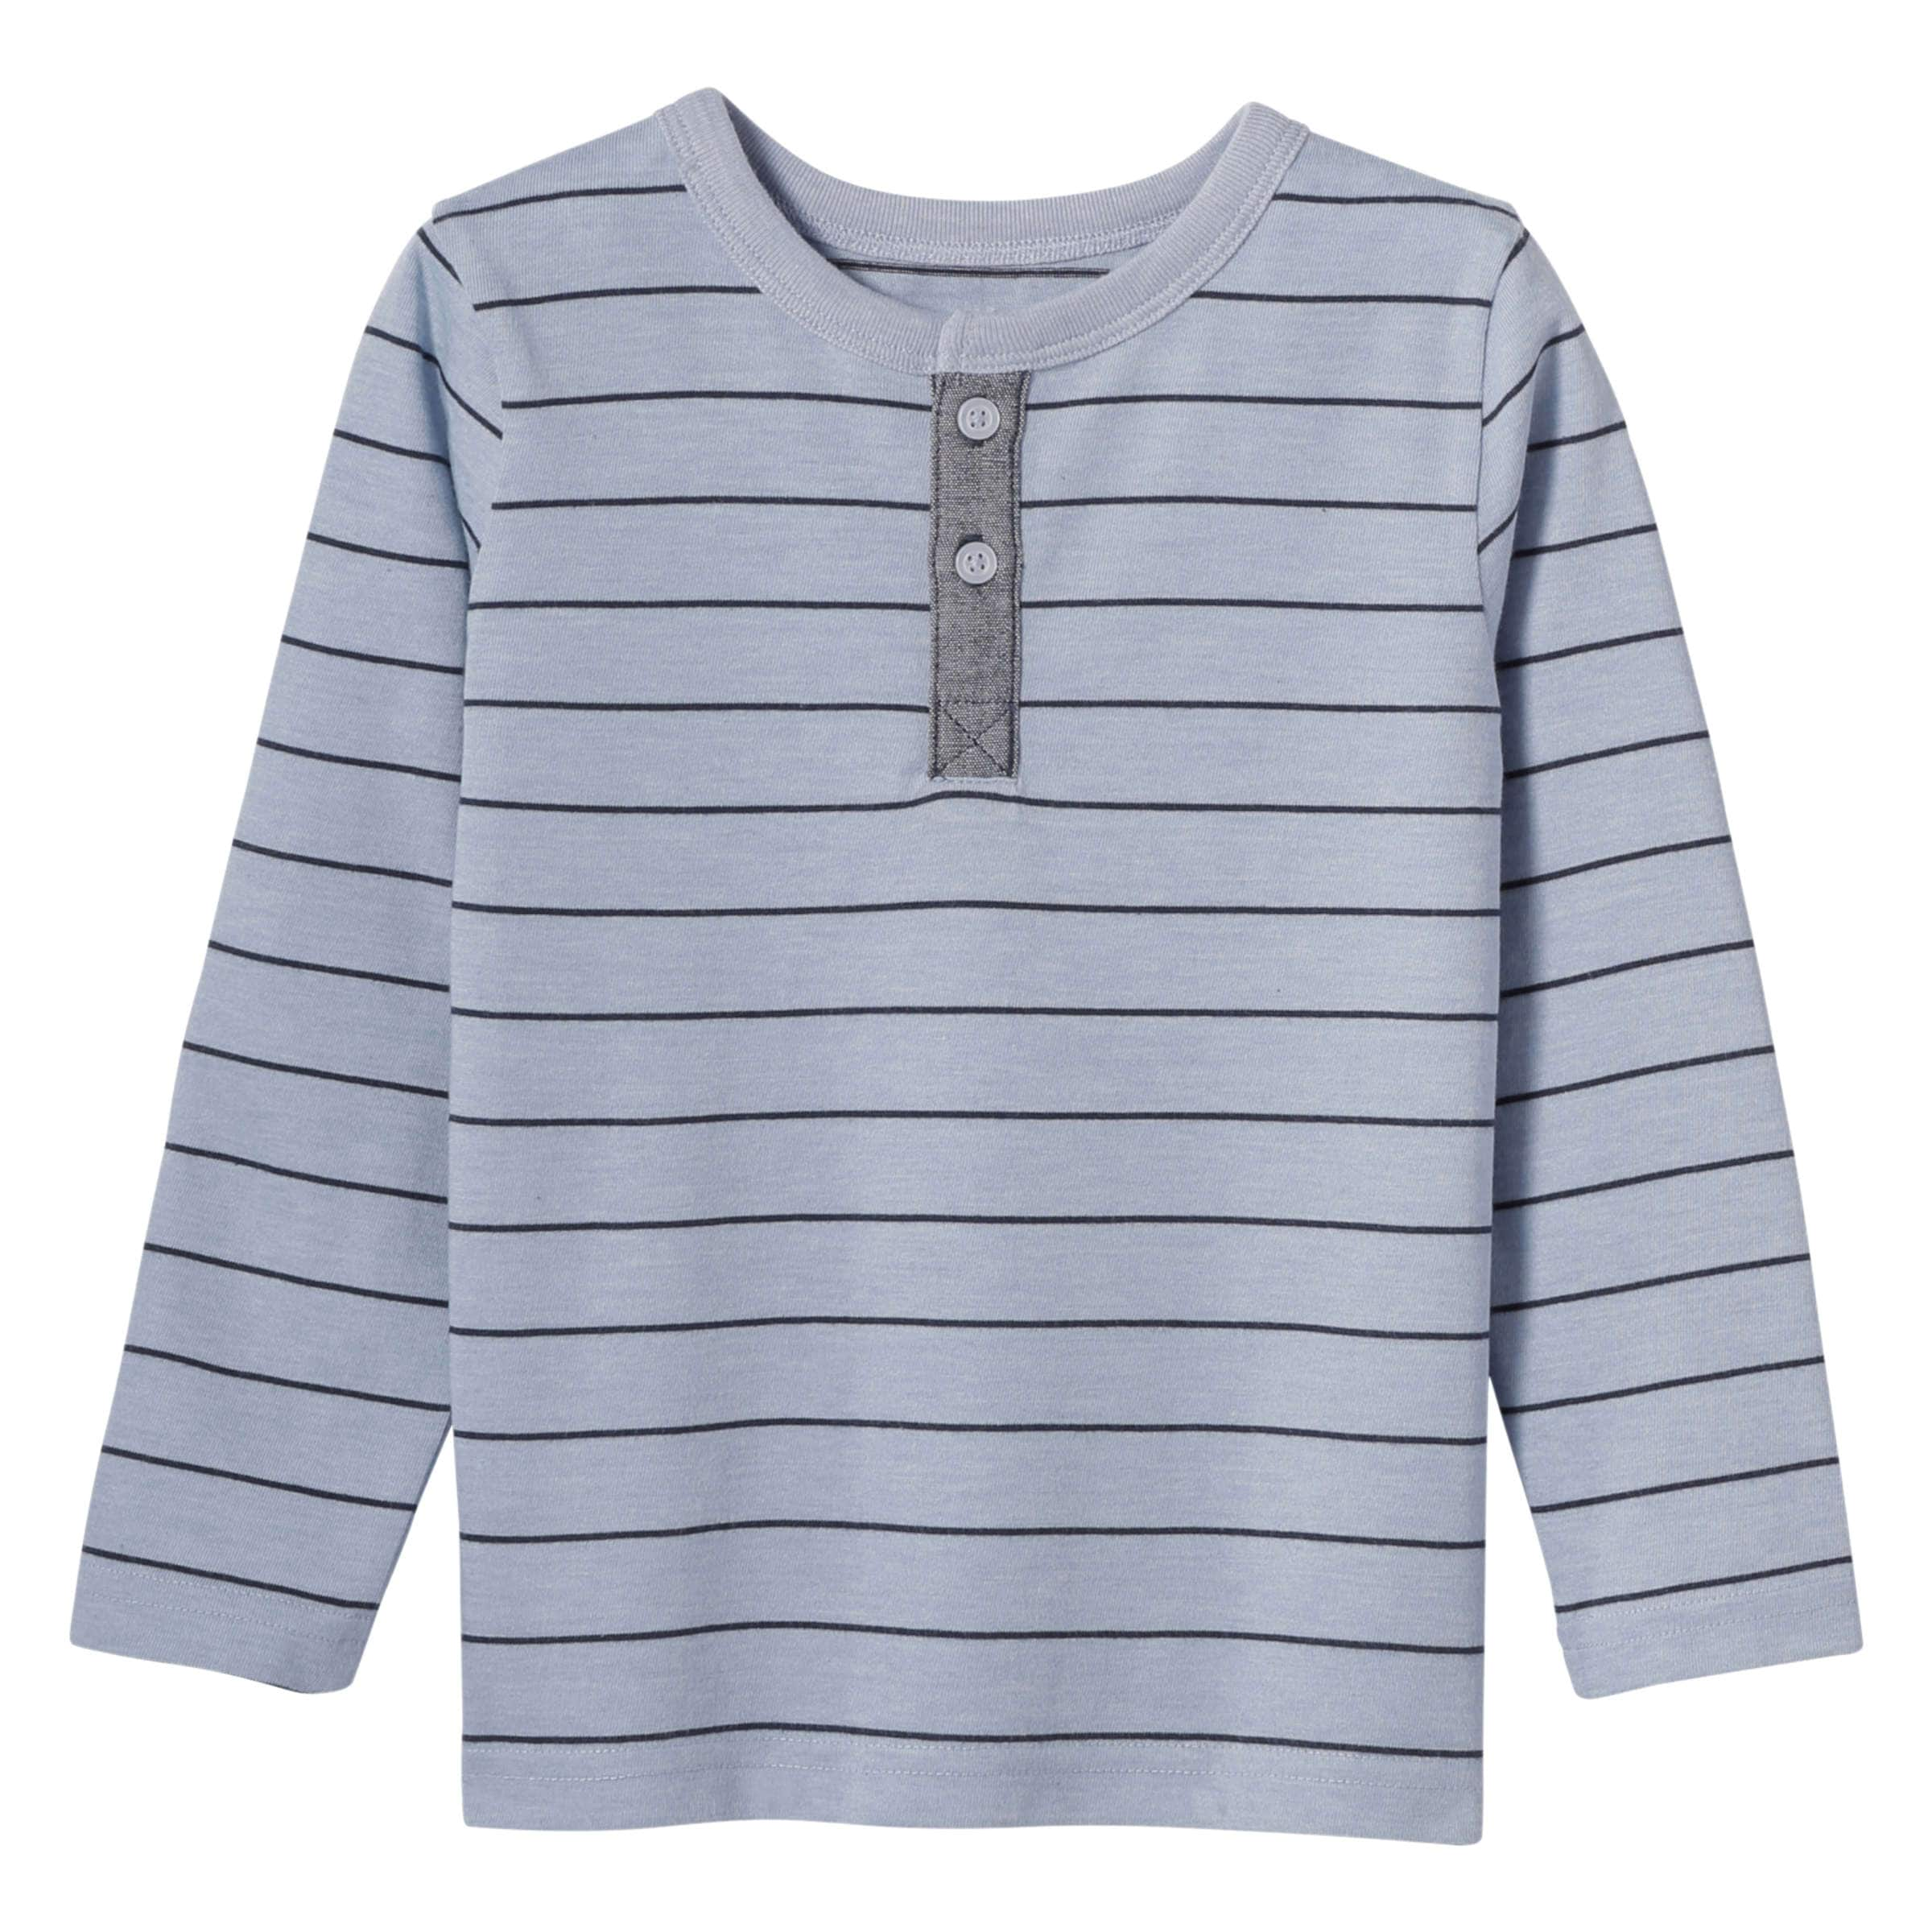 9df785af2 Toddler Boys' Henley Tee in Light Blue Mix from Joe Fresh